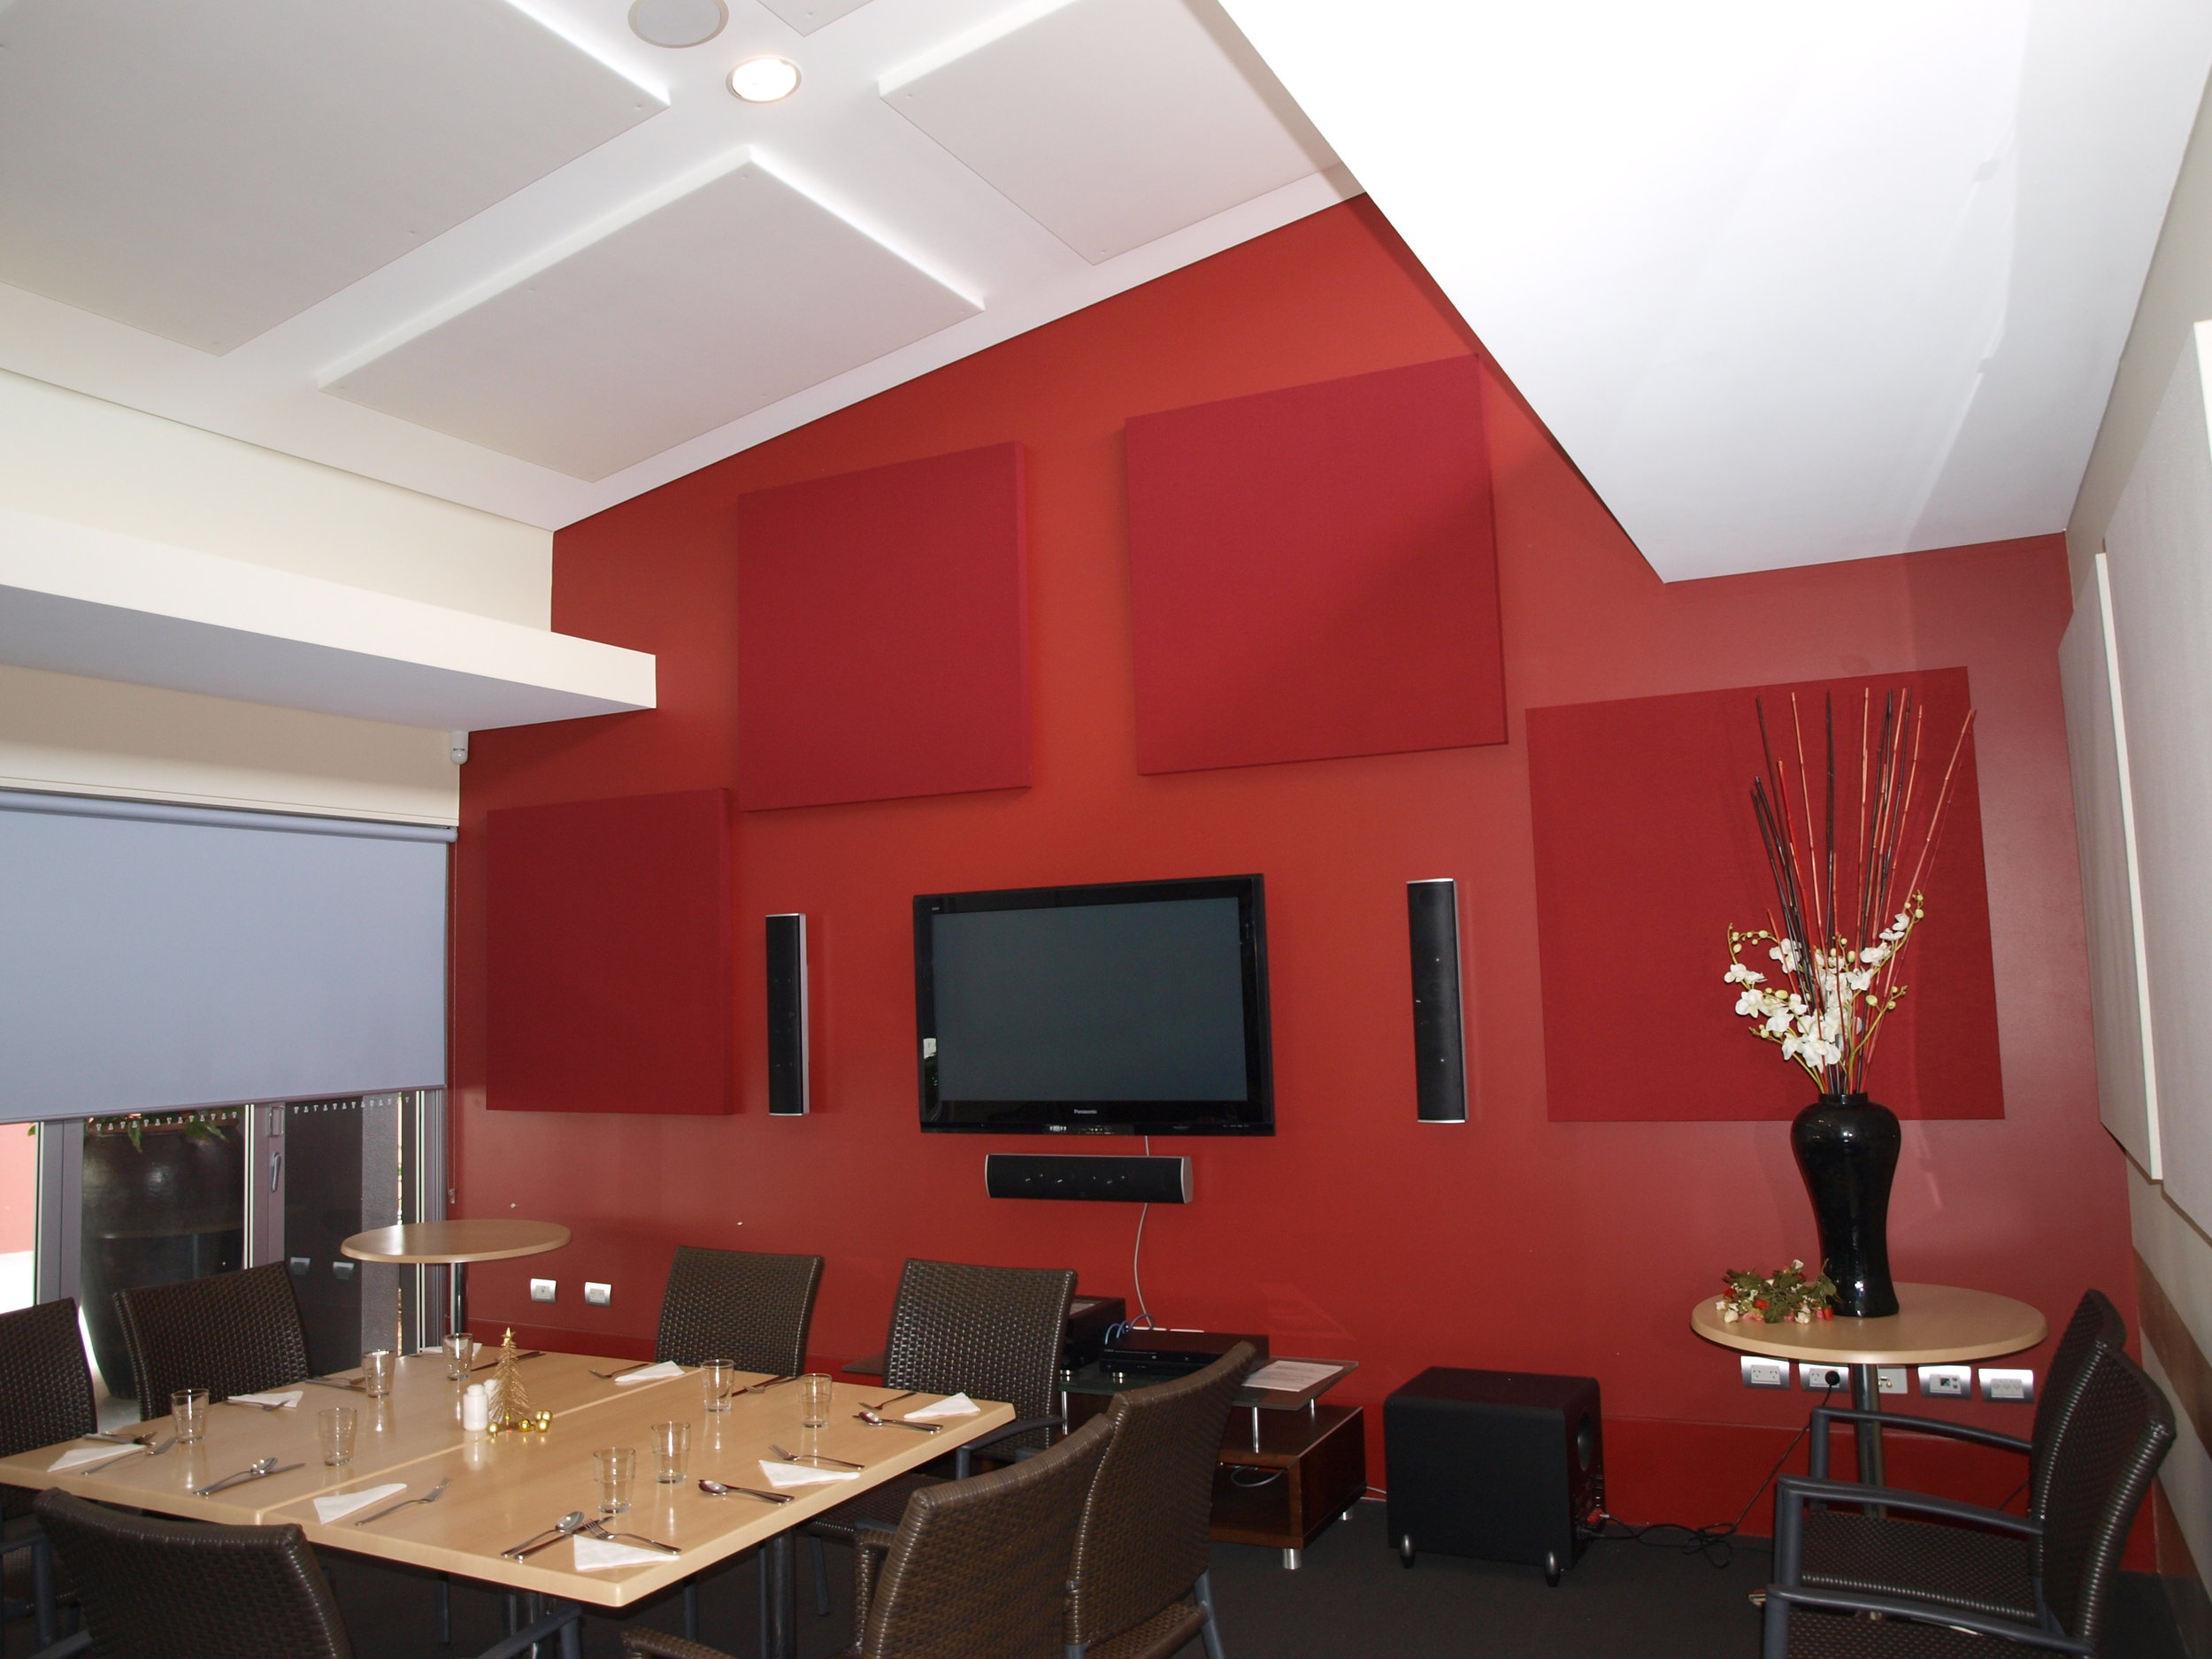 Retirement village dining room made quiet with acoustic modules